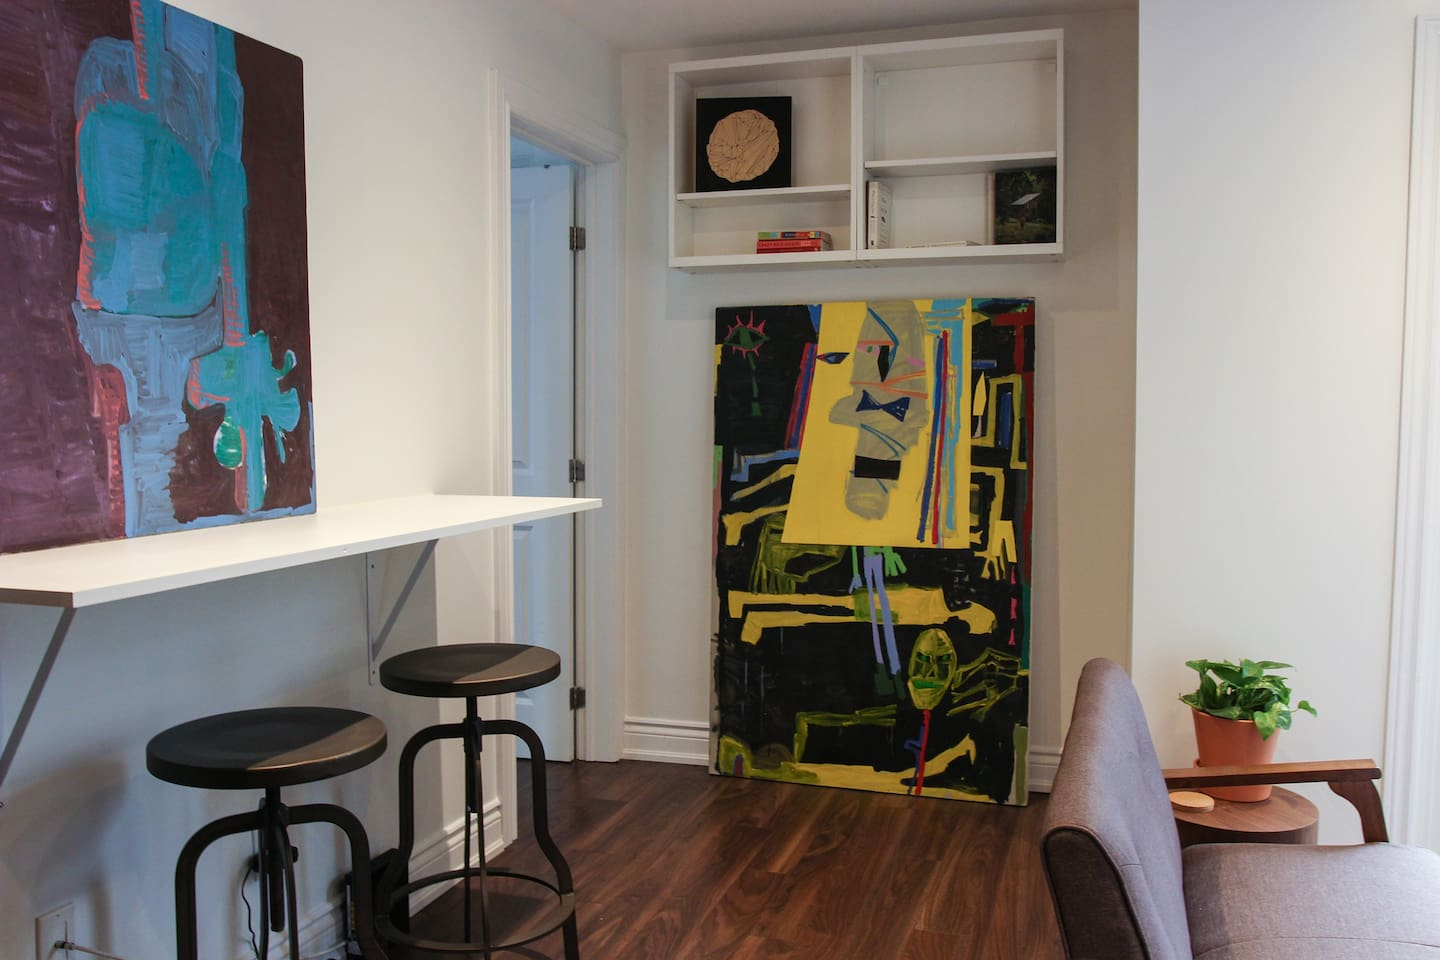 Living and dining area with artwork by local artist